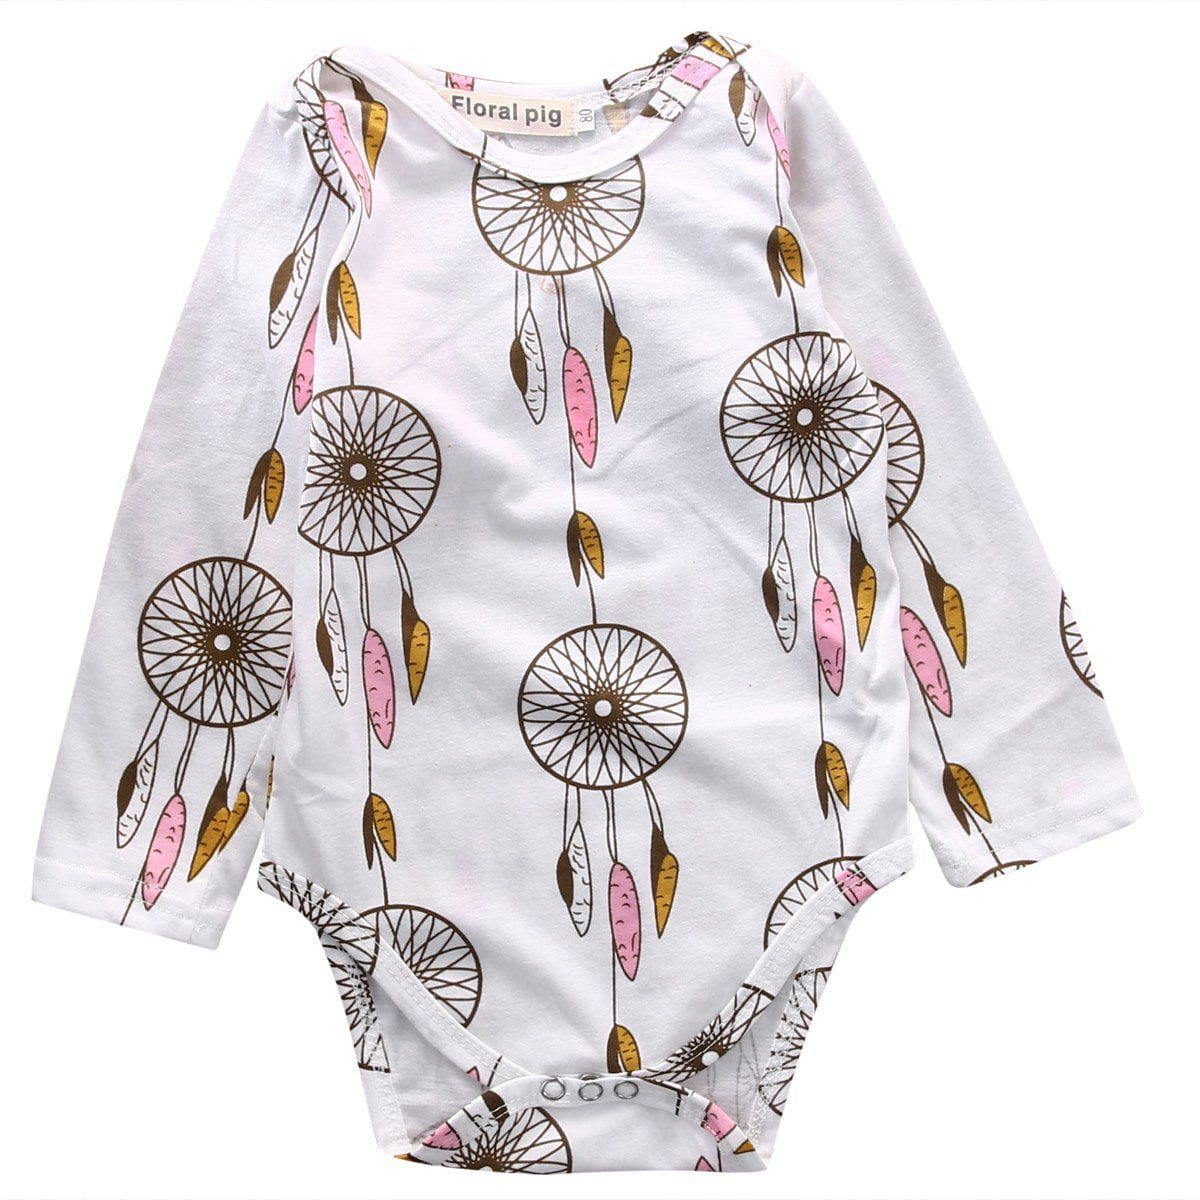 ff219da9ce4 Newborn Baby Cotton Romper Long Sleeve Colorful wind chimes Outfit